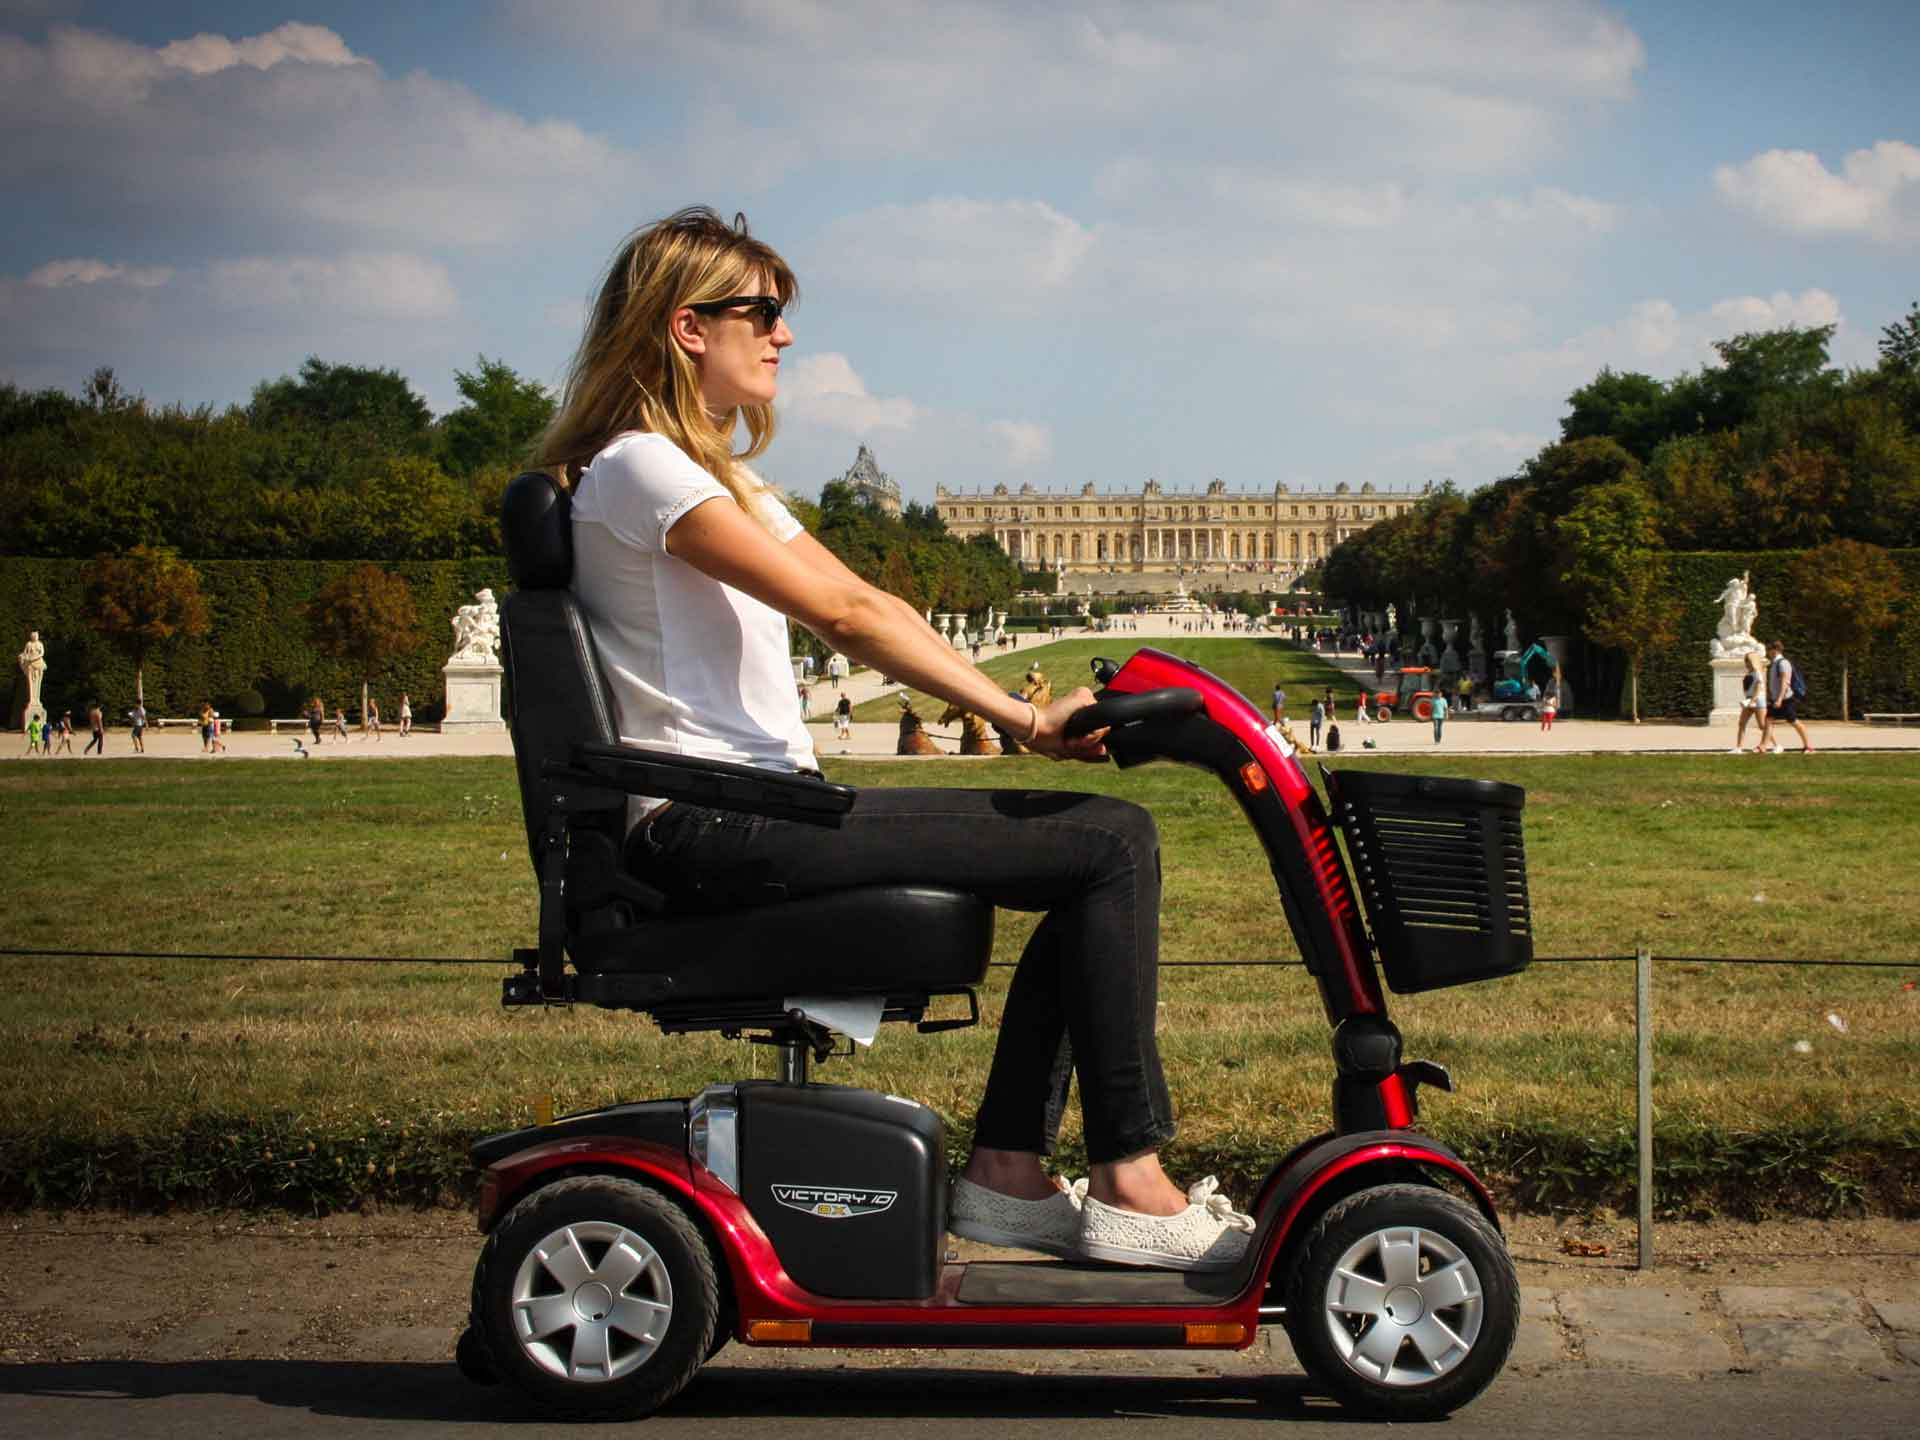 Electric scooter for the disabled, hire for tourism and visiting